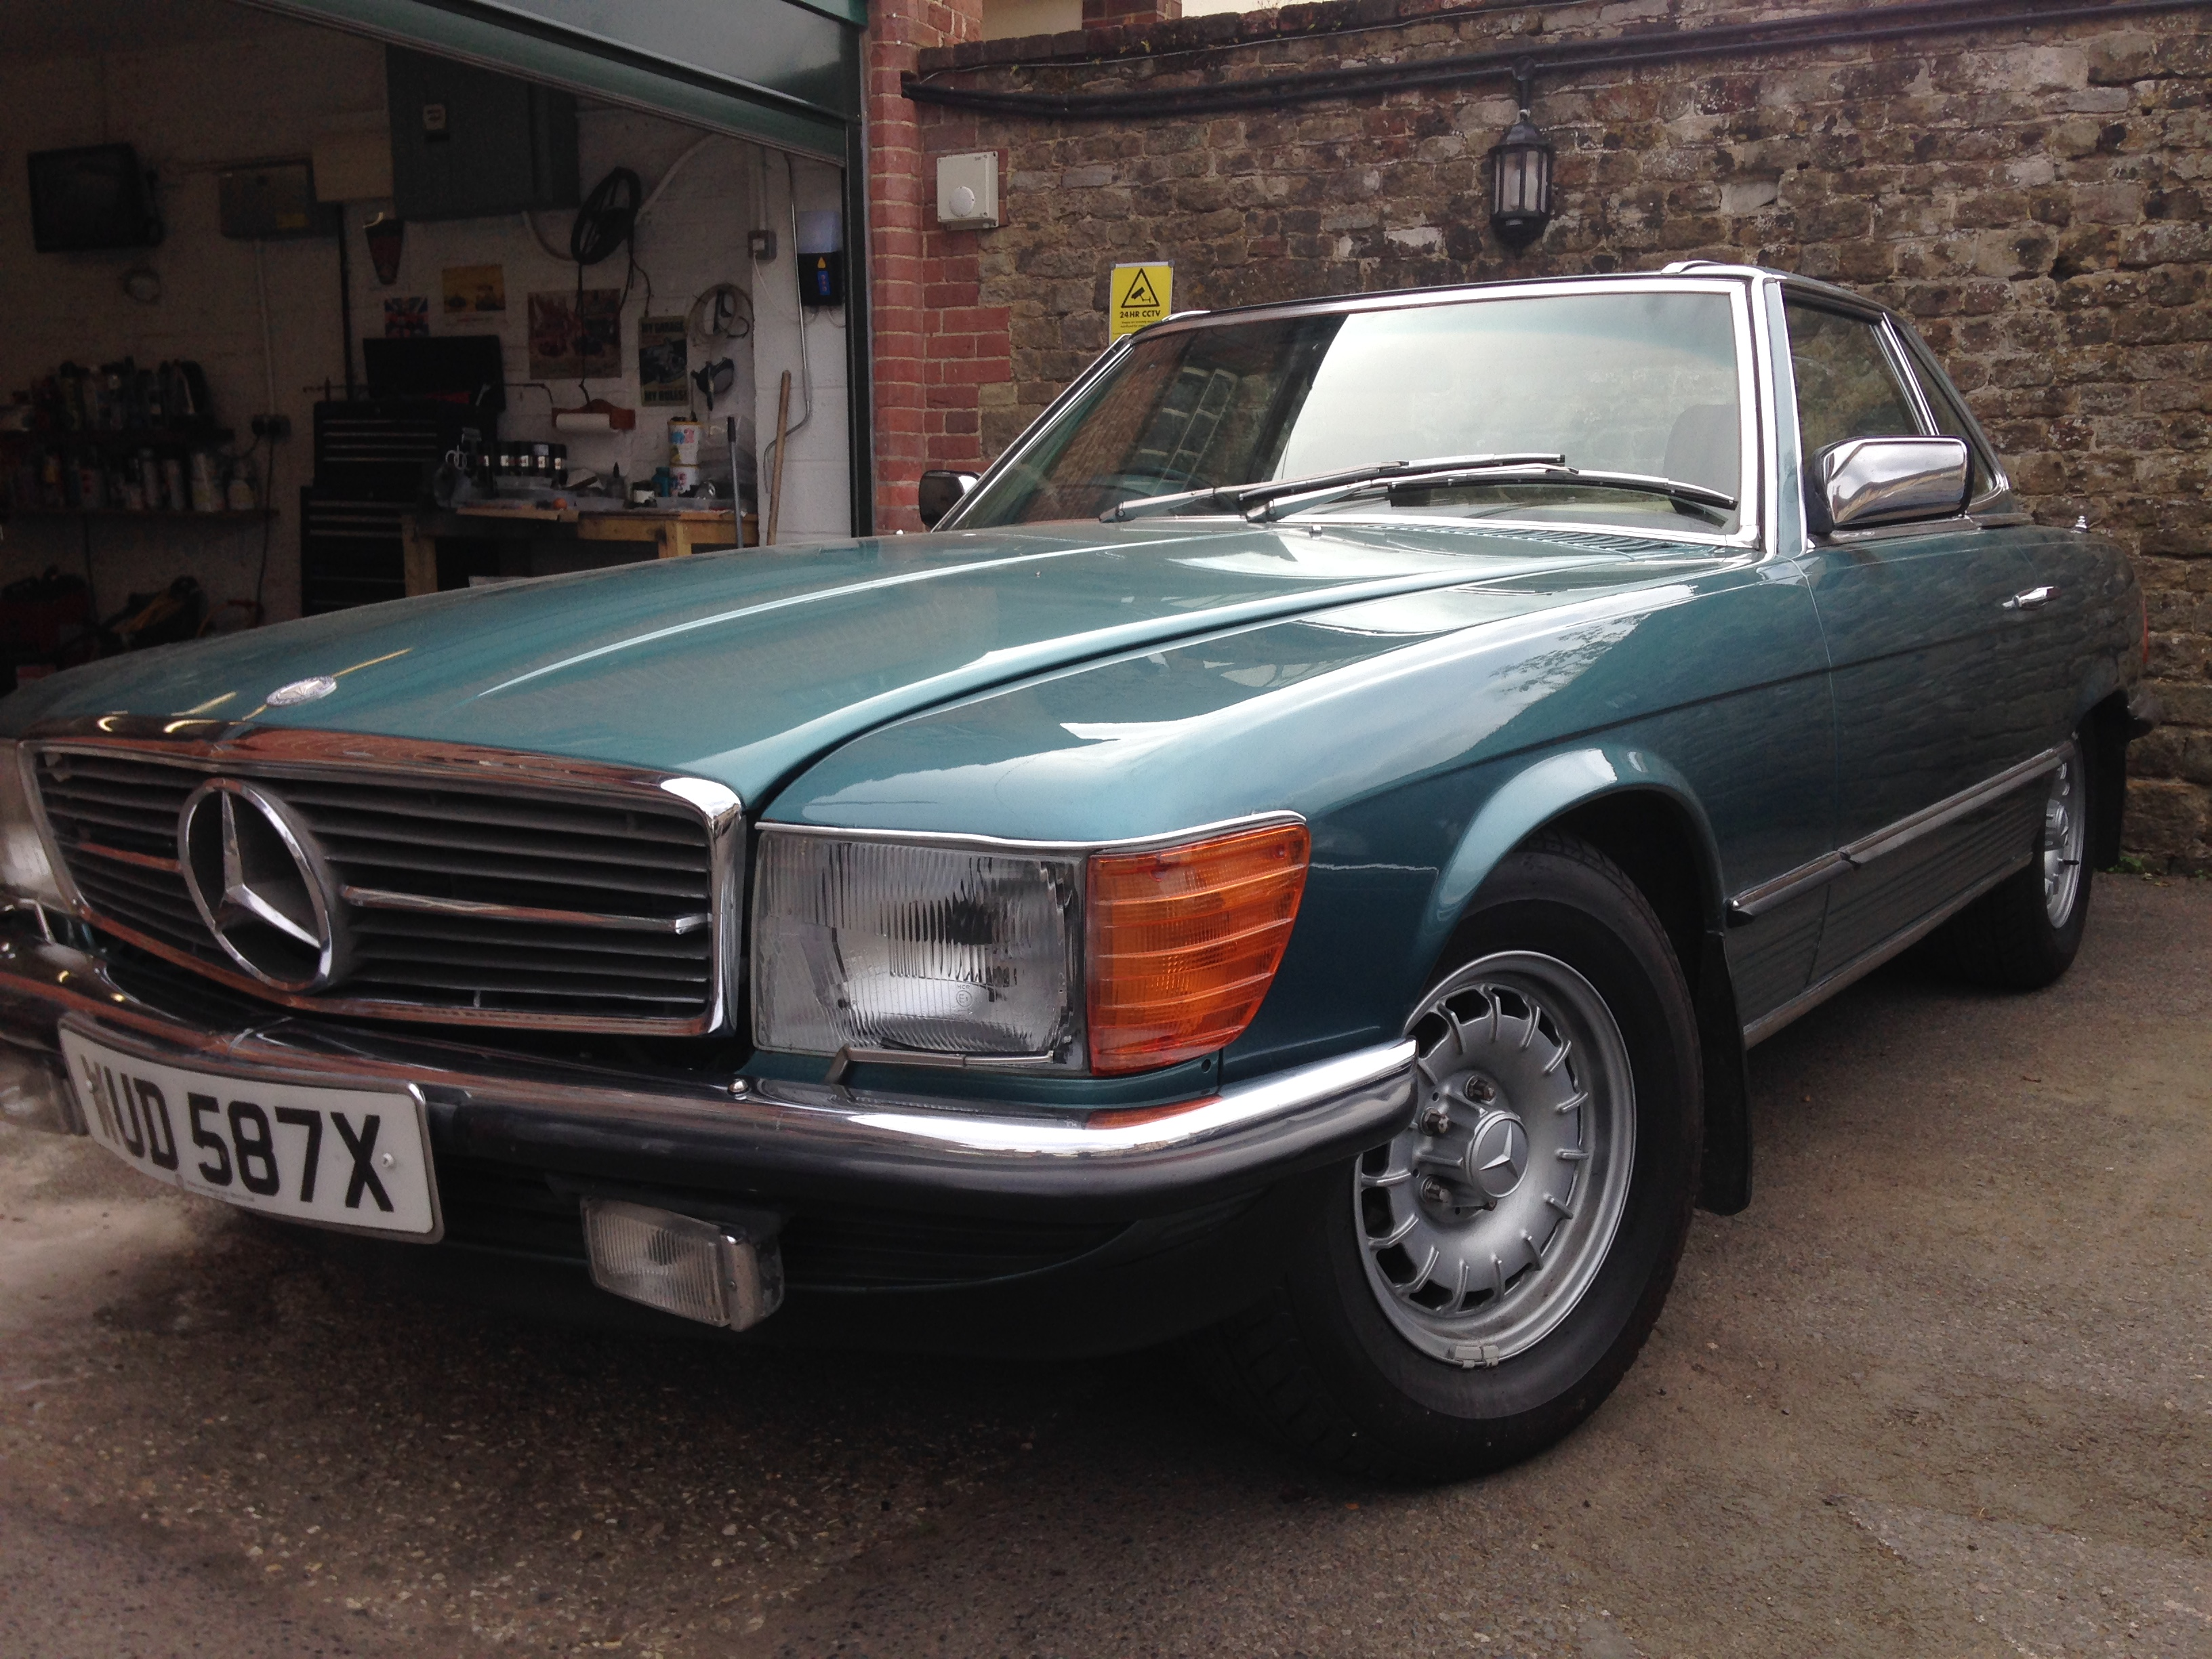 1982 Mercedes Benz 500SL - Country Classic Cars